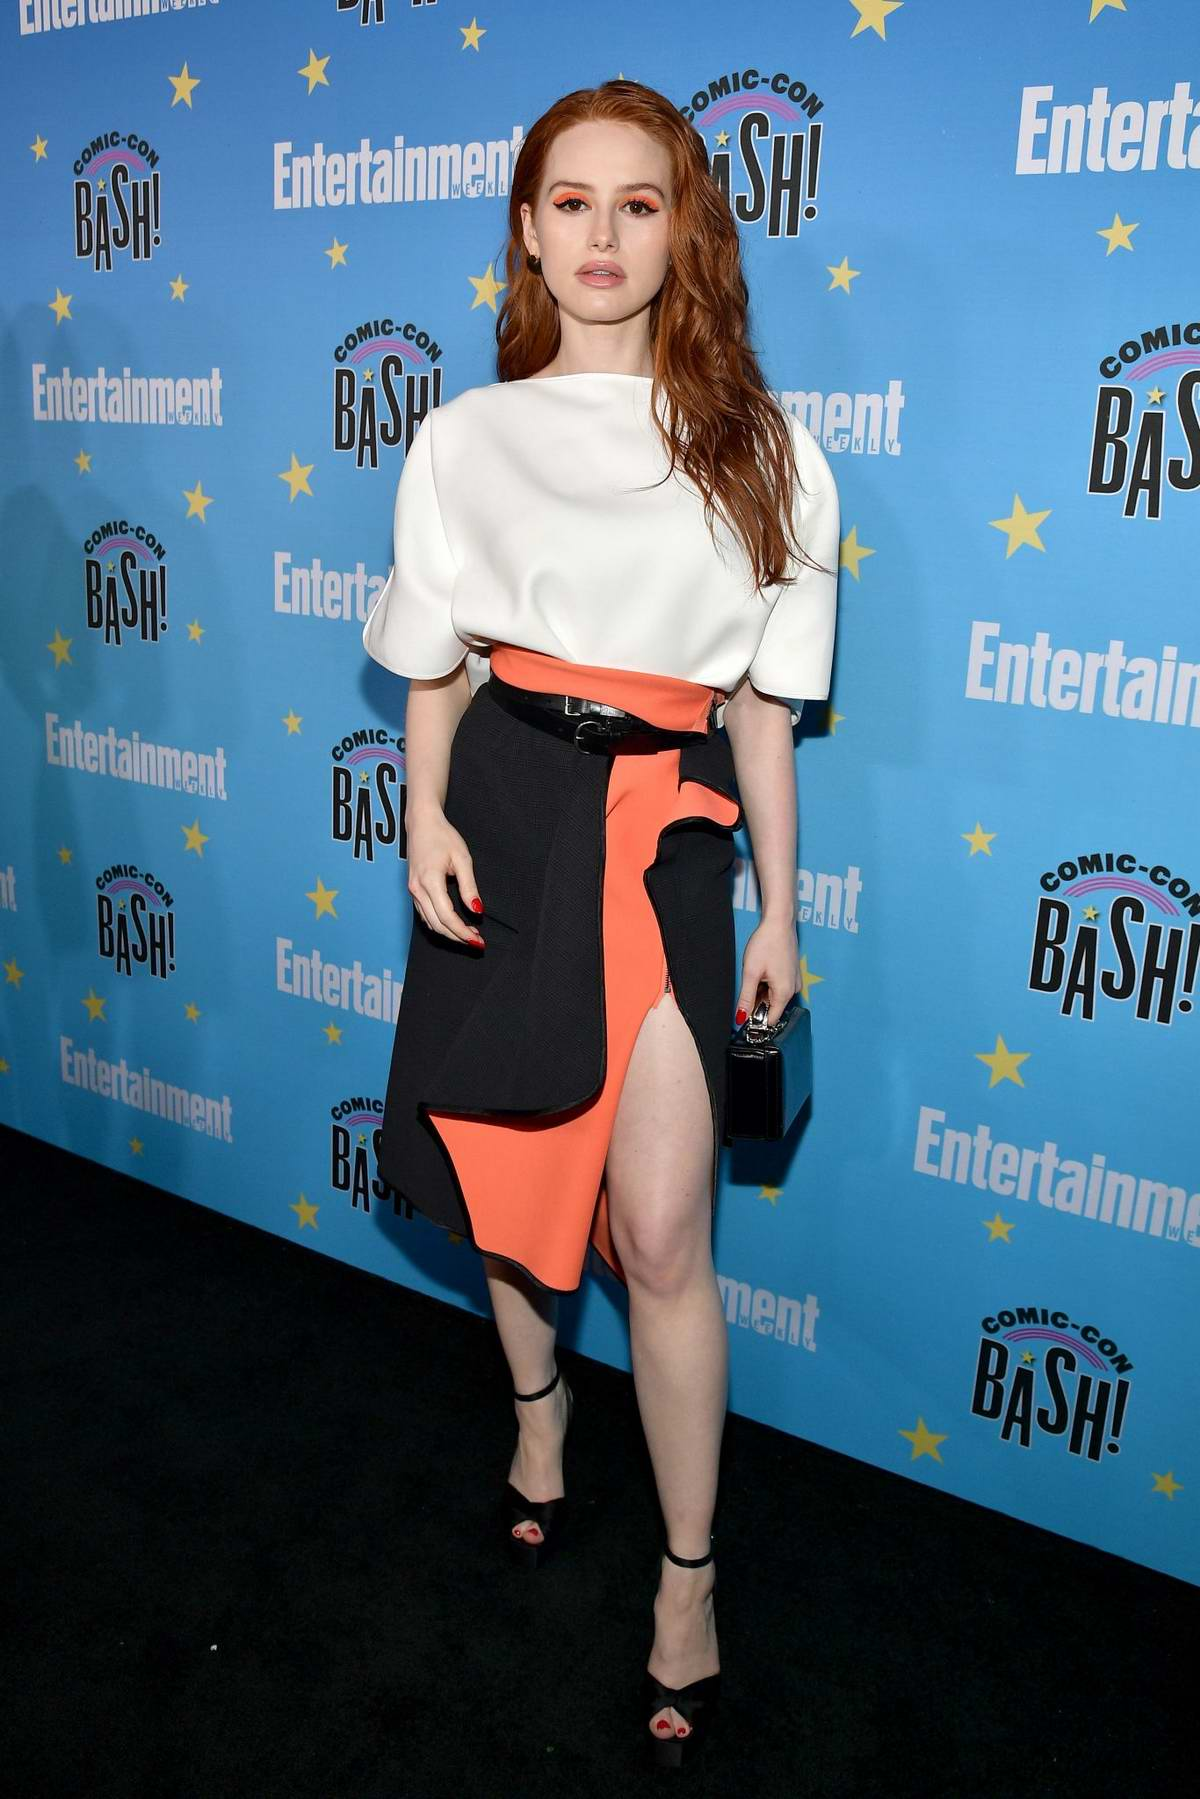 Madelaine Petsch attends the Entertainment Weekly 2019 Comic-Con party at the Hard Rock Hotel in San Diego, California